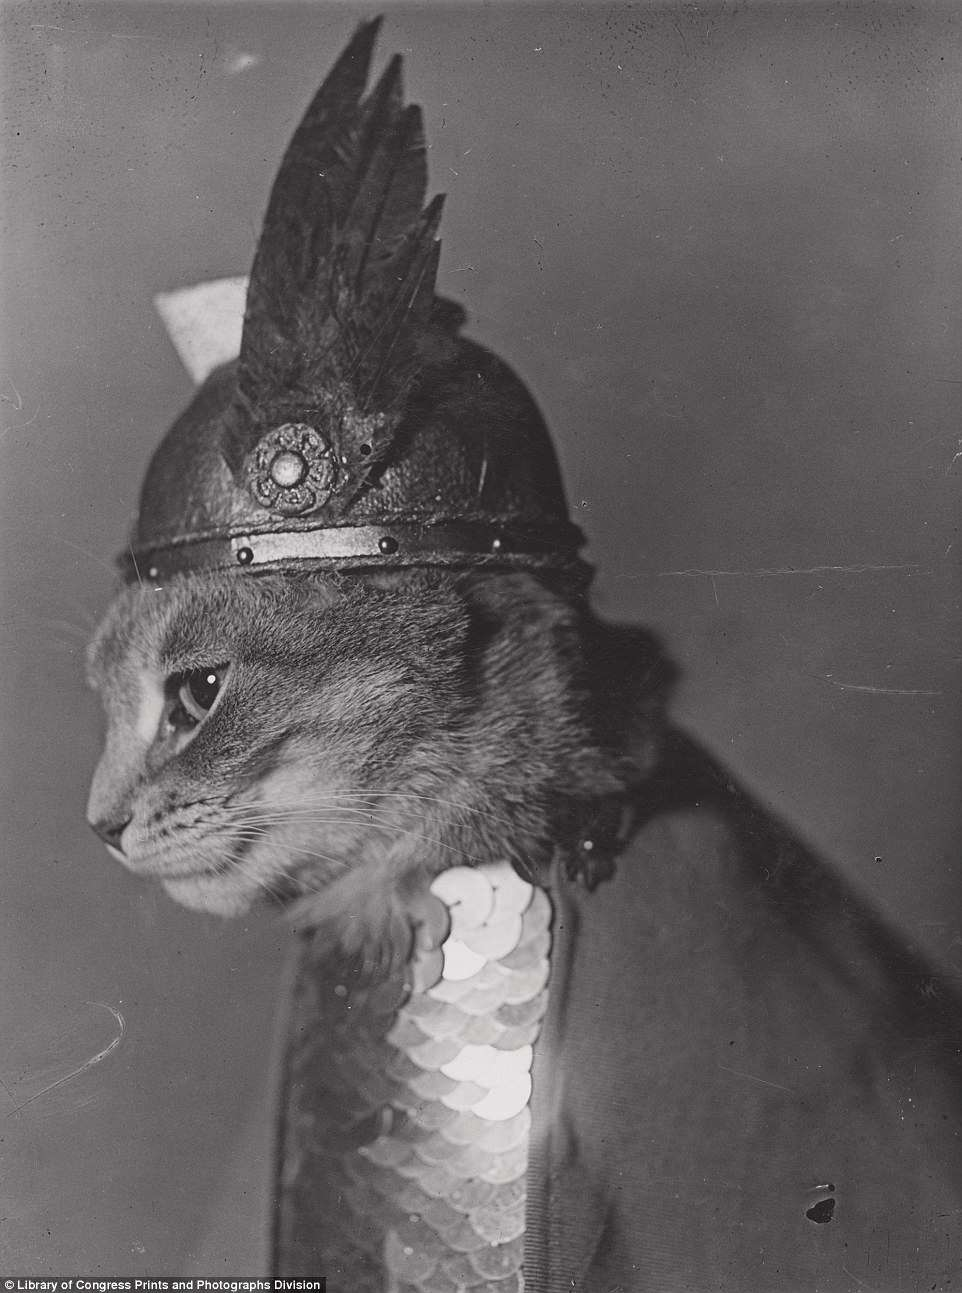 There's also that reliable photo standby, the funny cat picture. This one, taken in 1936, features an annoyed-looking feline dressed to resemble the female warrior Brunhilde